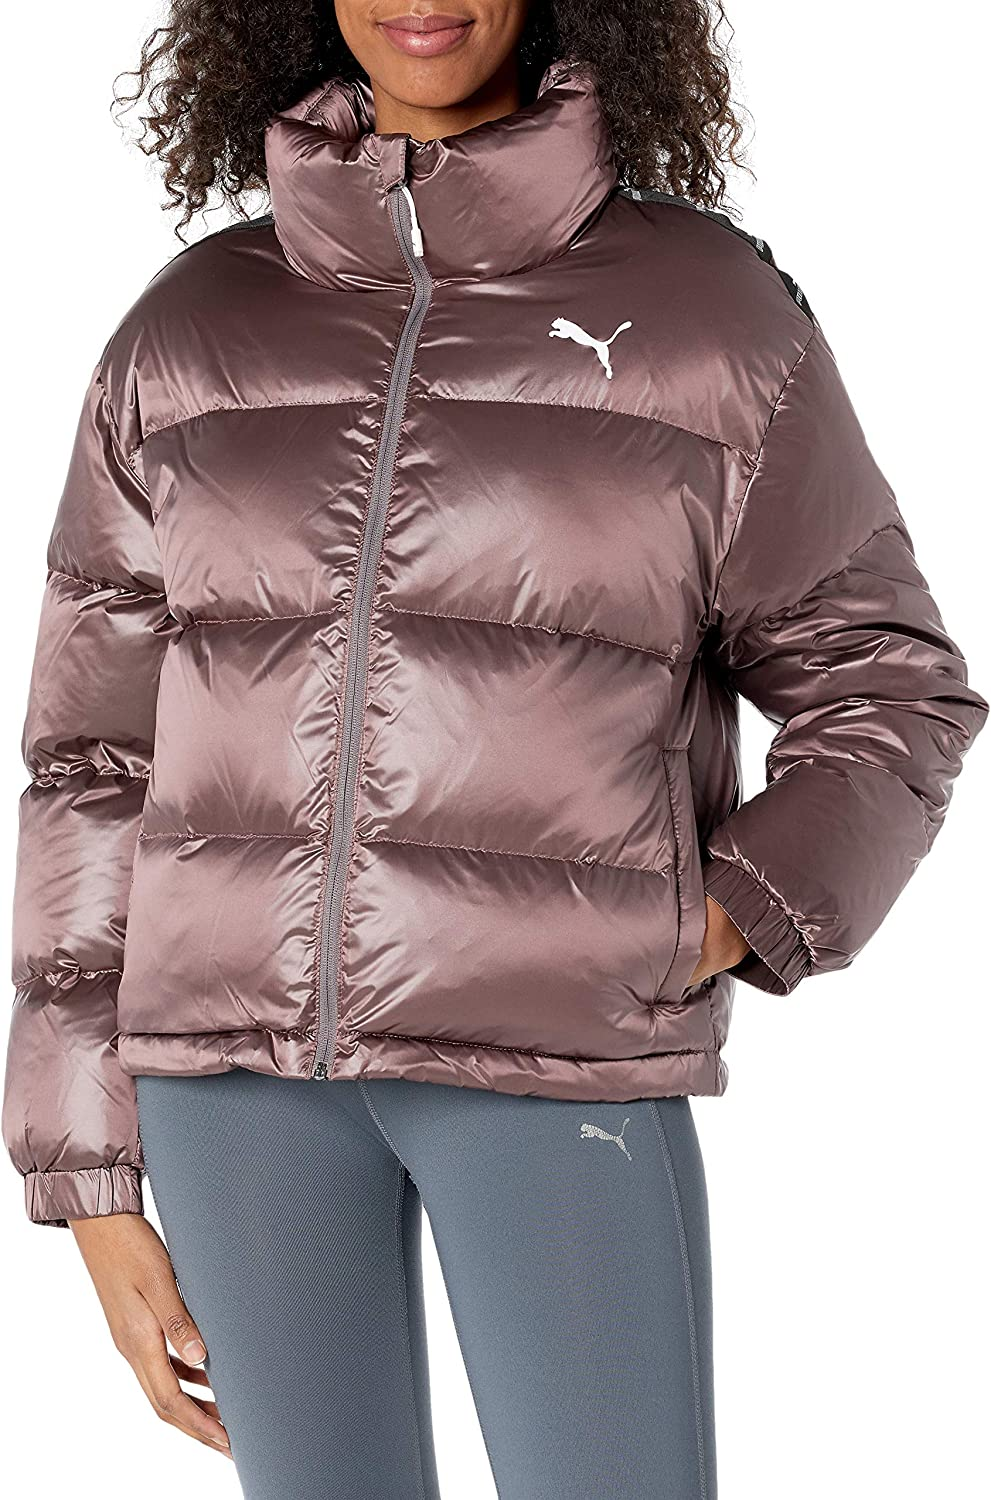 PUMA Women's Special Campaign Shine Down Jacket Ranking TOP2